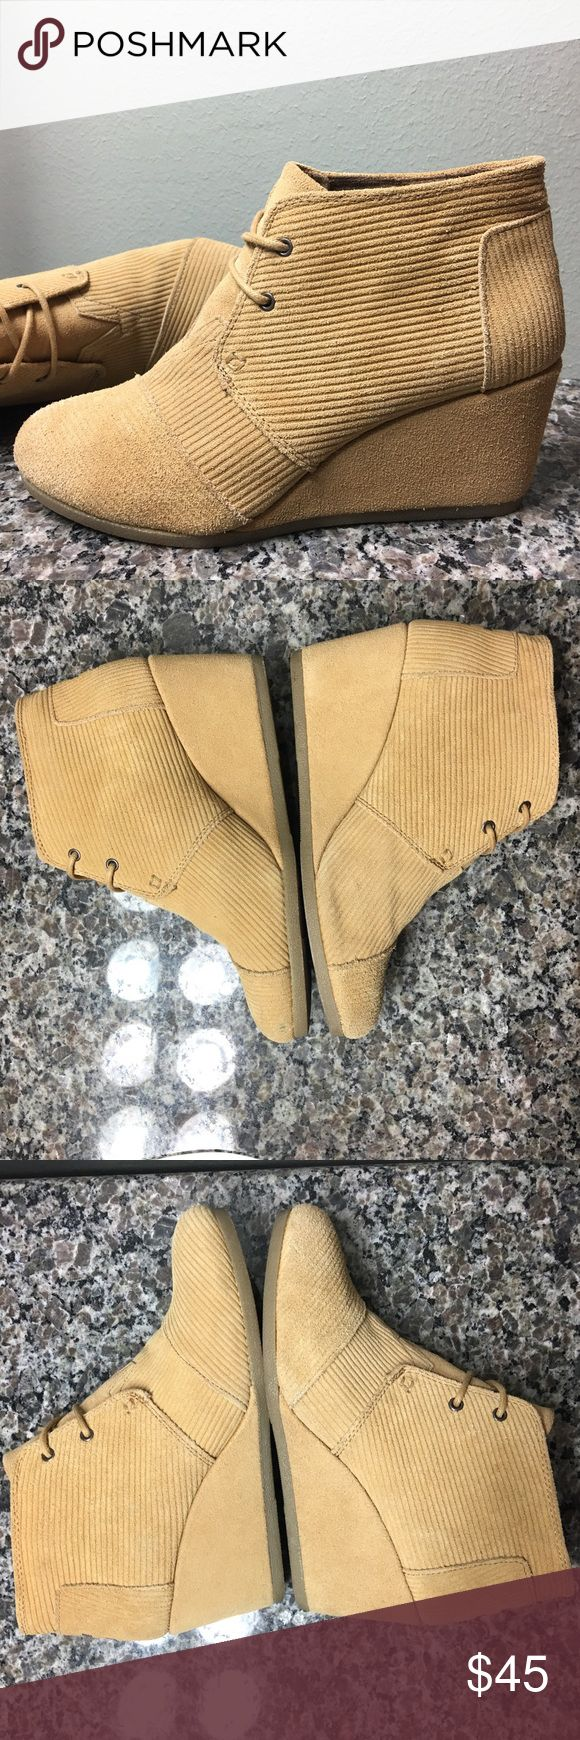 """TOMS Desert Wedge in Corduroy Suede, Tan, 9 Cute! In very good used condition. Small mark on one shoe toward sole and not noticeable when wearing. Also appears to have been gently cleaned, but doesn't take away from beauty of this shoe. So cute! See my closet for additional pictures. Color is technically """"medium brown,"""" but they look more tan to me! ❤️ TOMS Shoes Wedges"""